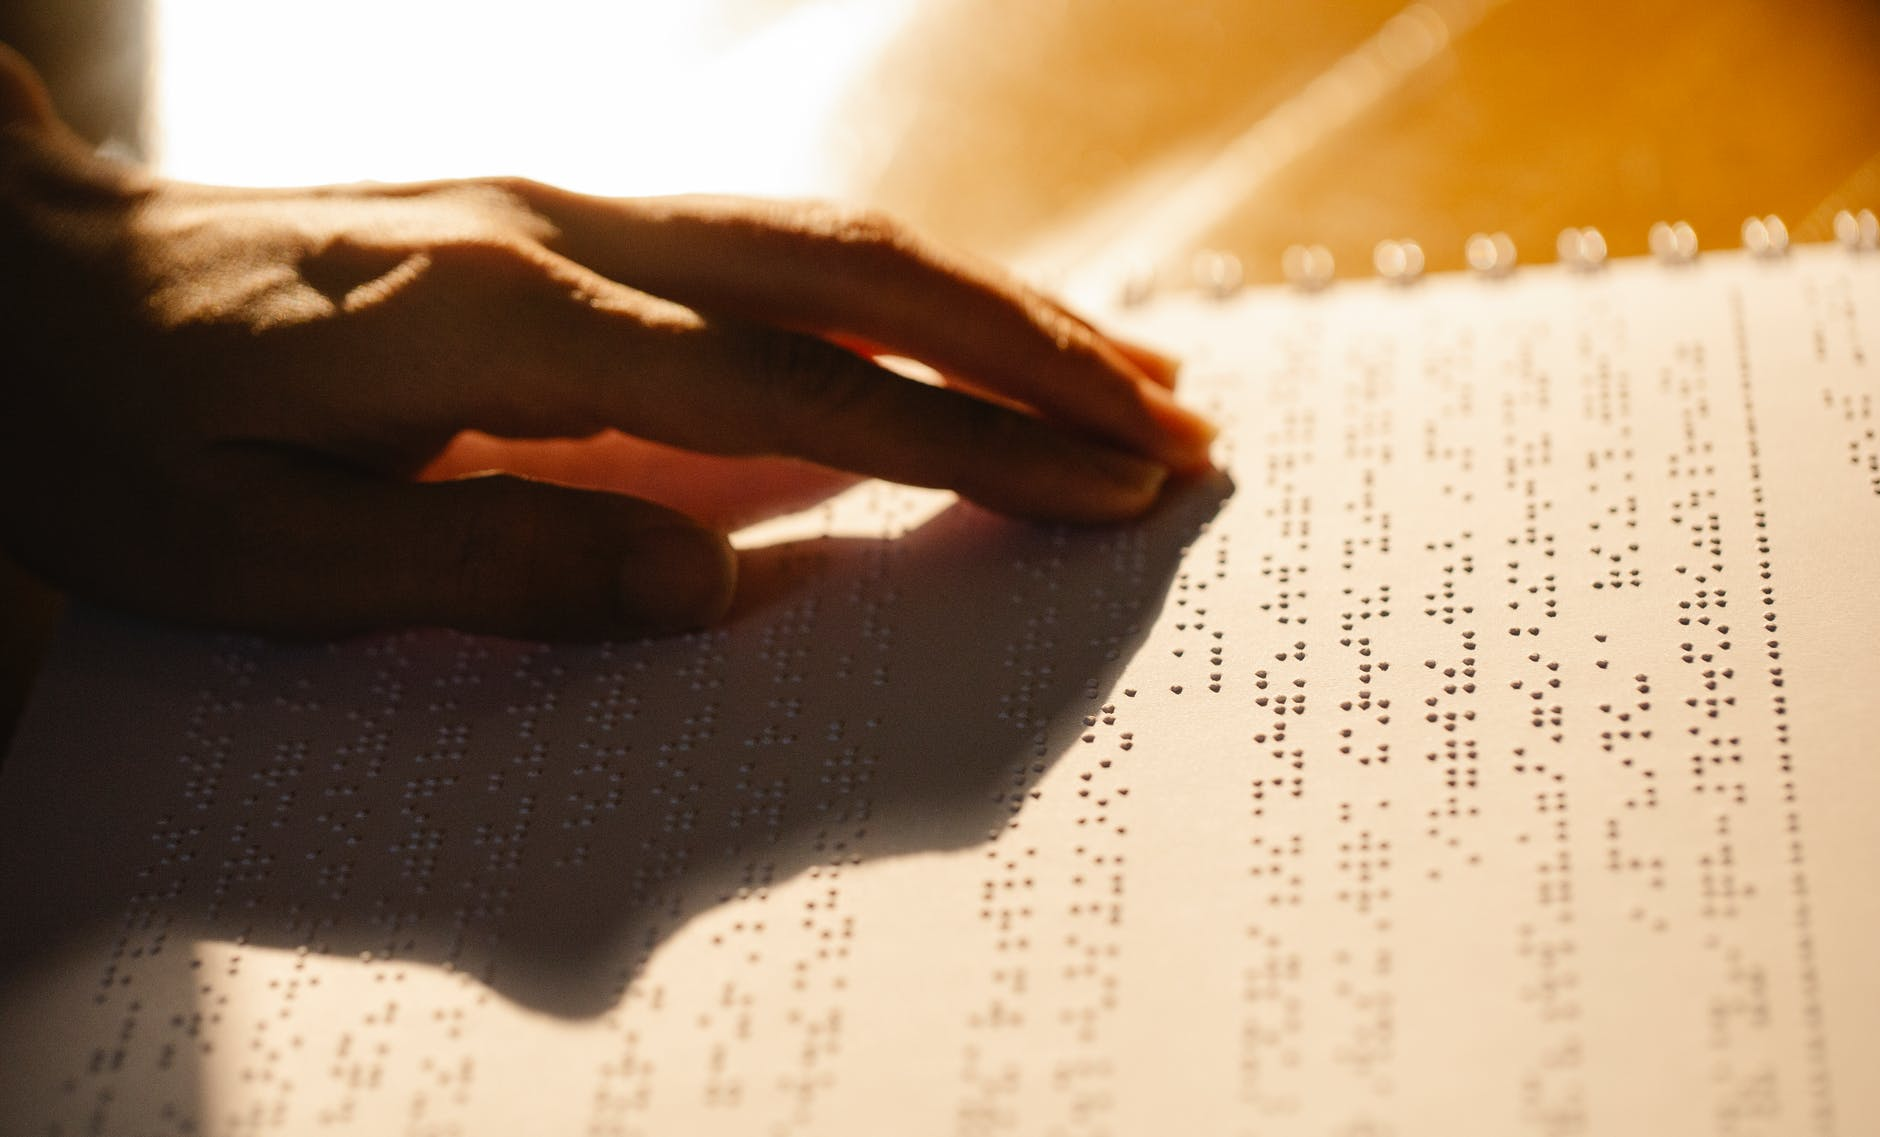 close up photo of person using book for the visually impaired